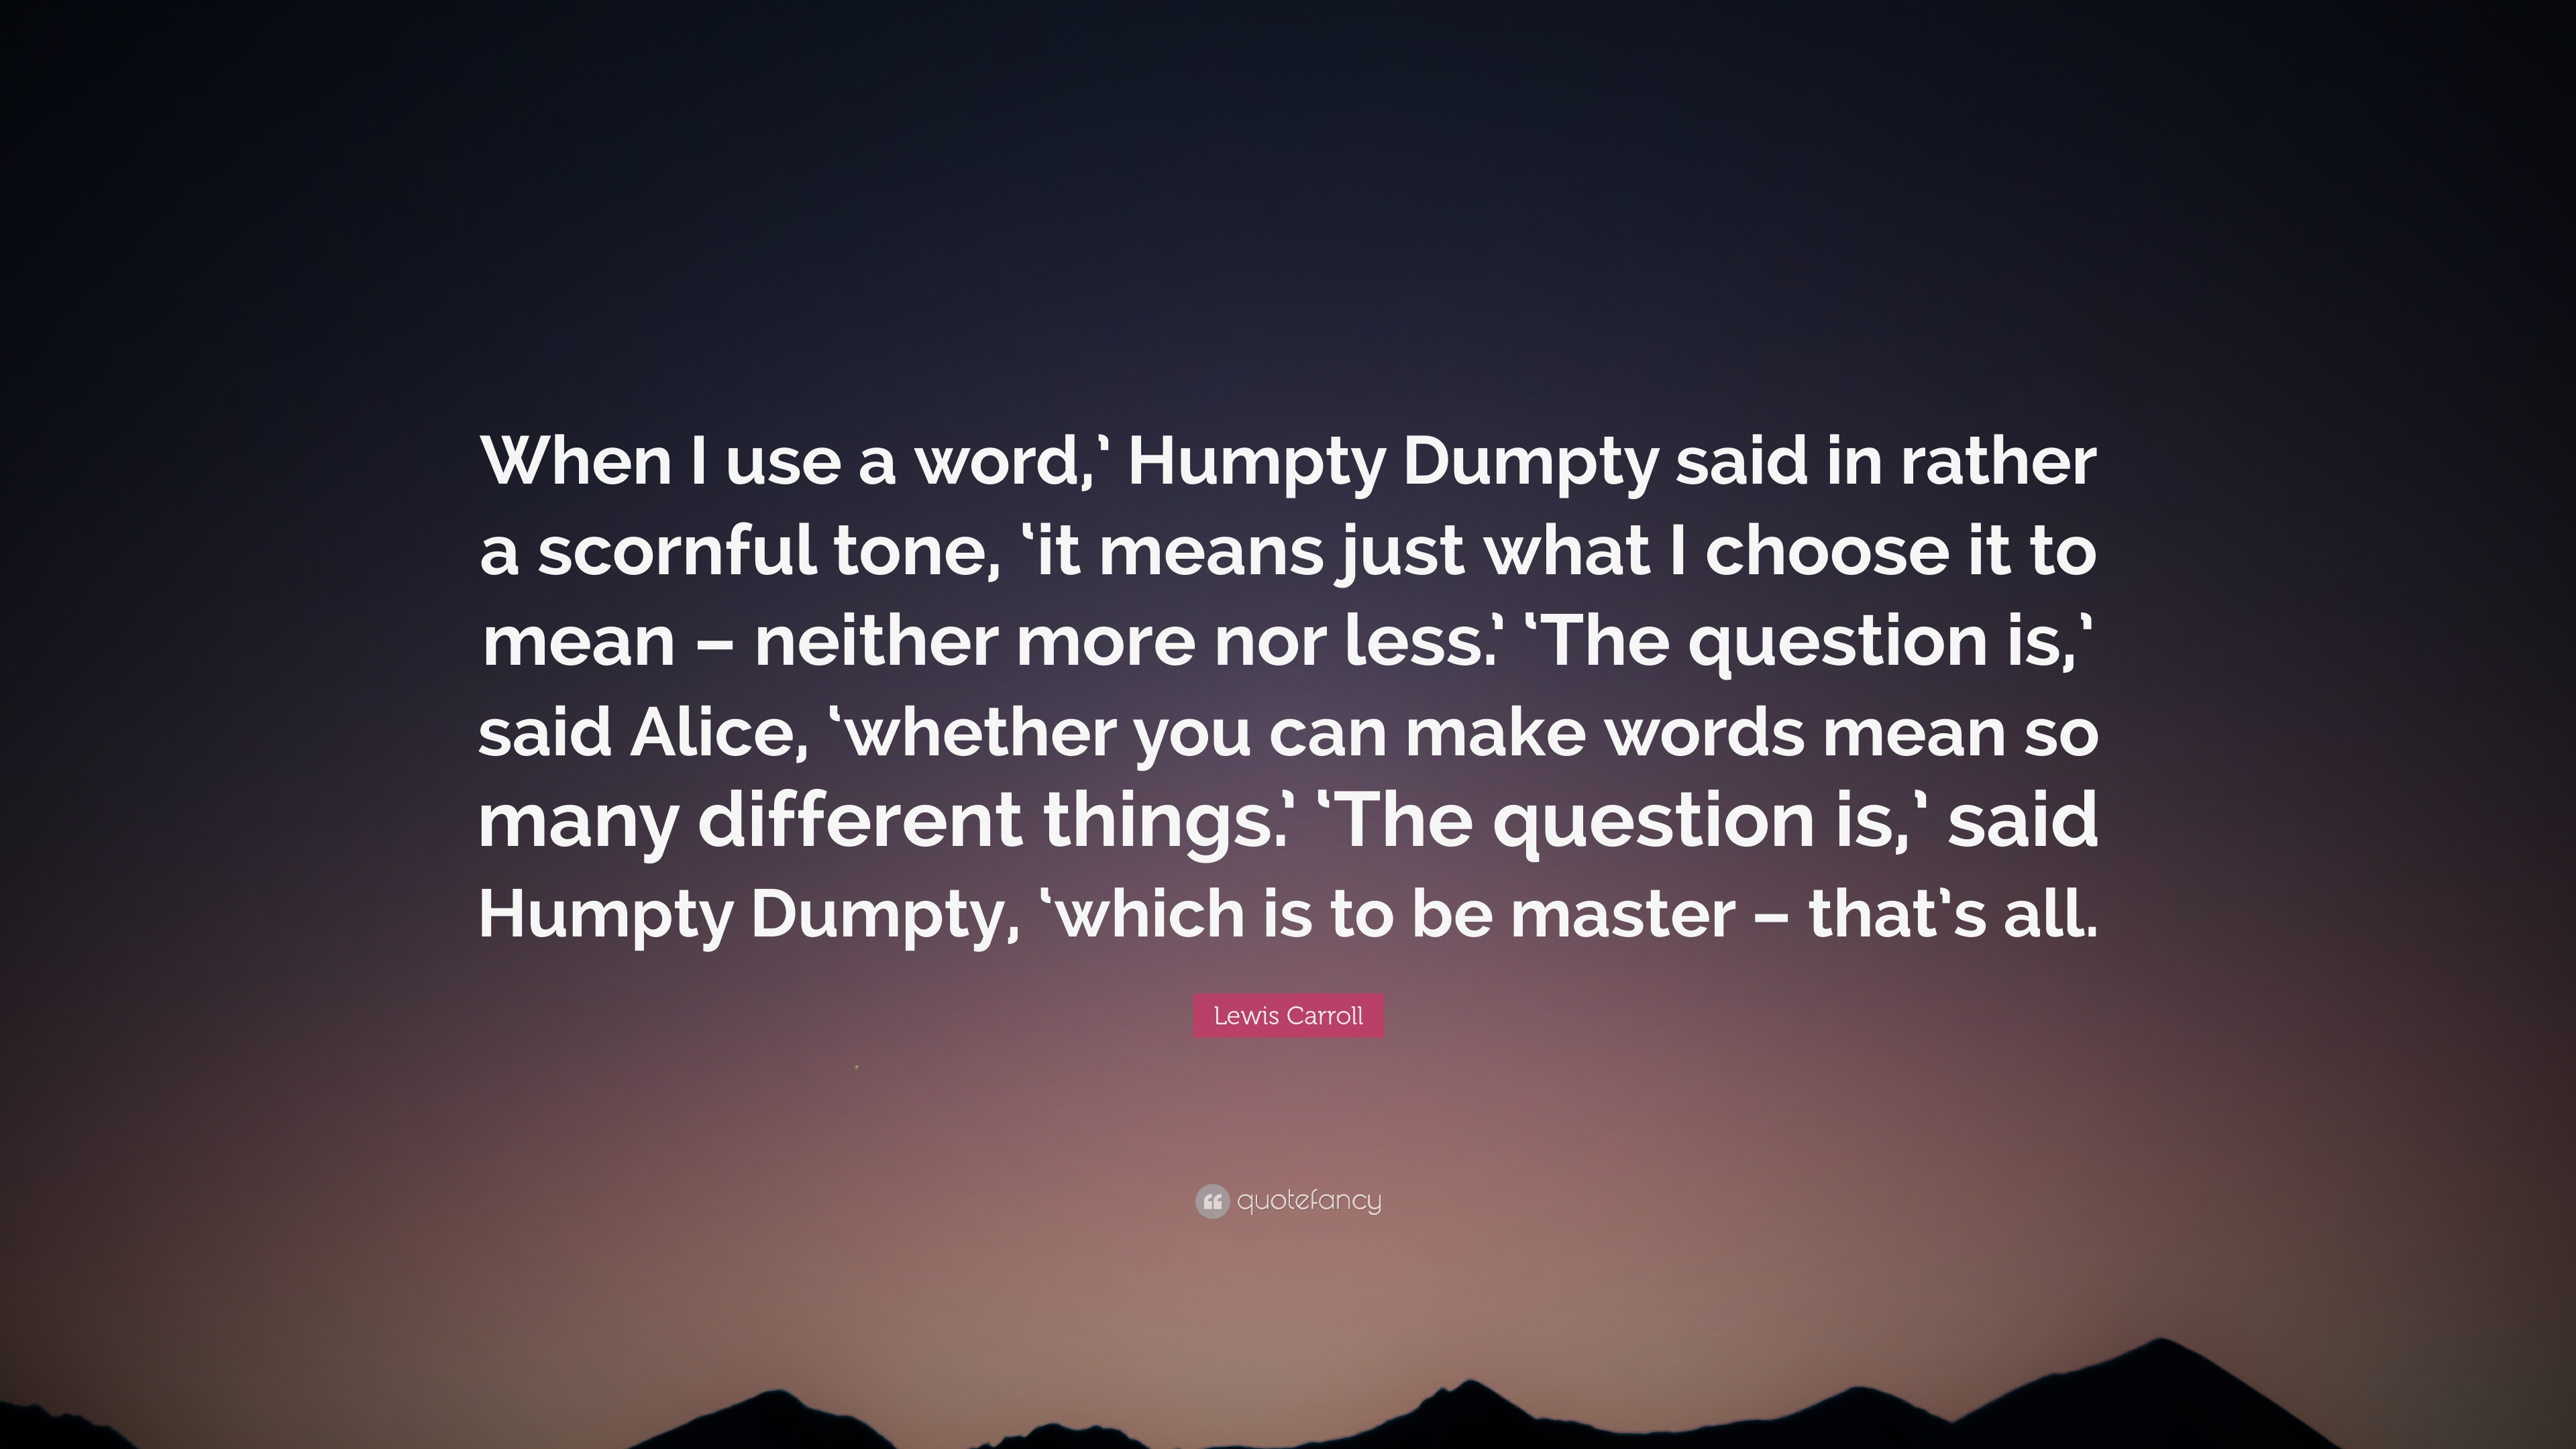 lewis carroll quote when i use a word humpty dumpty said in